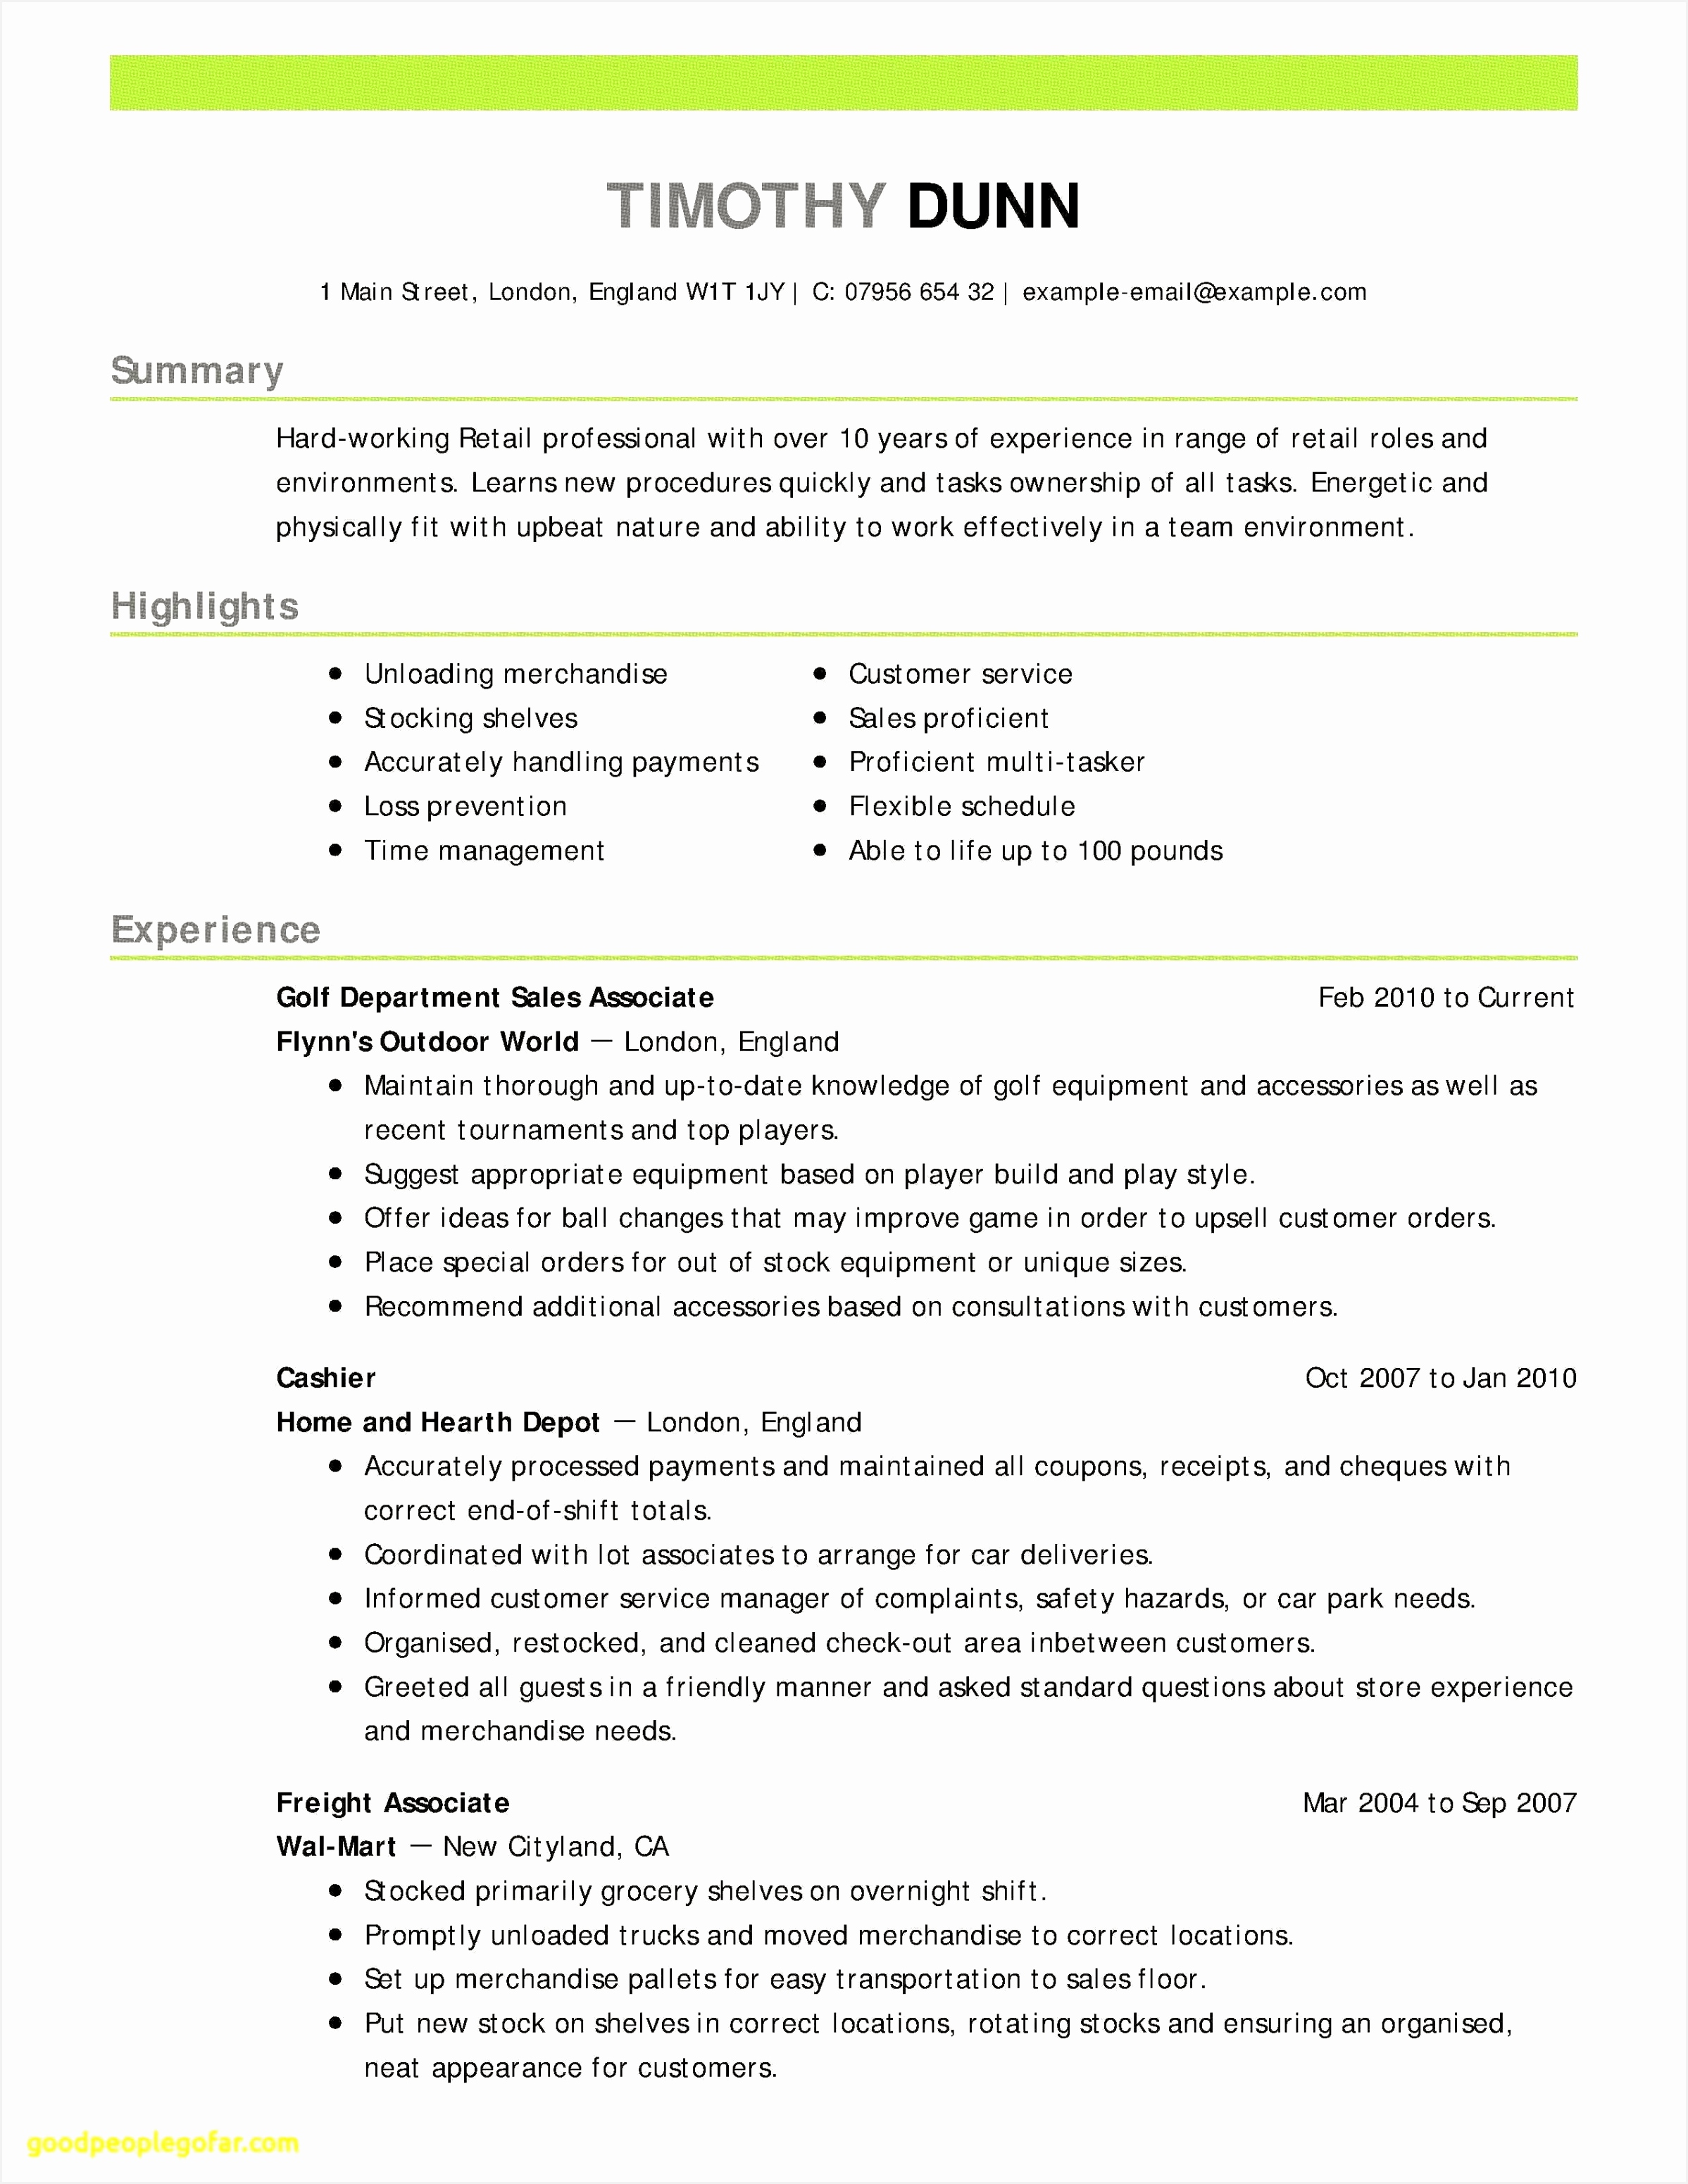 Sample Resume for someone with No Work Experience Dshdh Beautiful Resume for someone with No Work Experience New Www Indeed Resume Of 6 Sample Resume for someone with No Work Experience